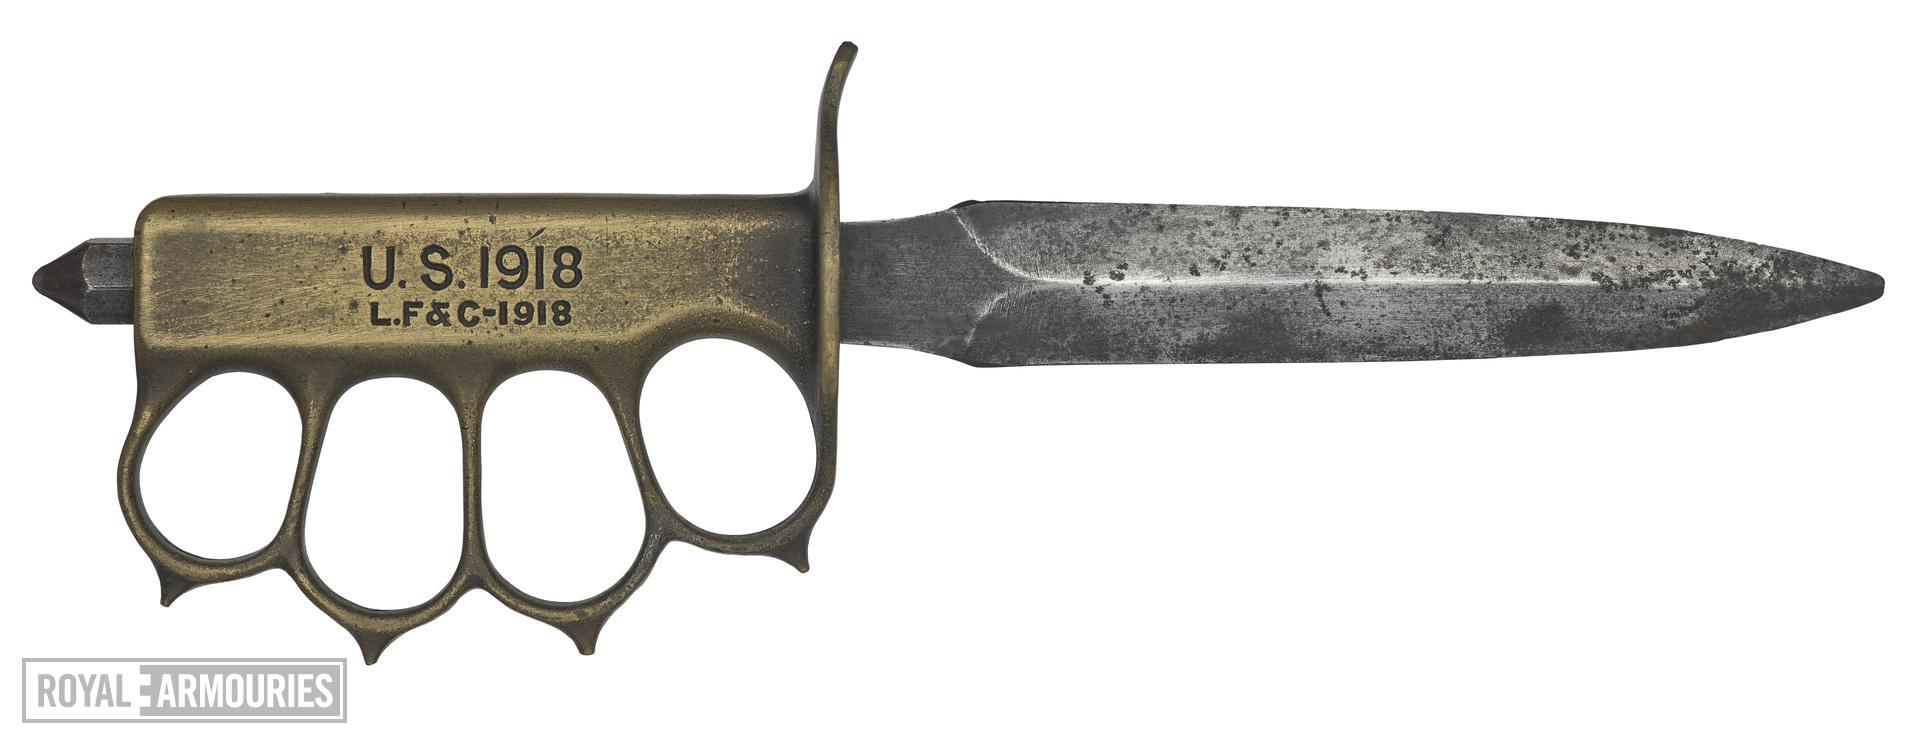 Model of 1917 Trench Knife - Arms of the First World War